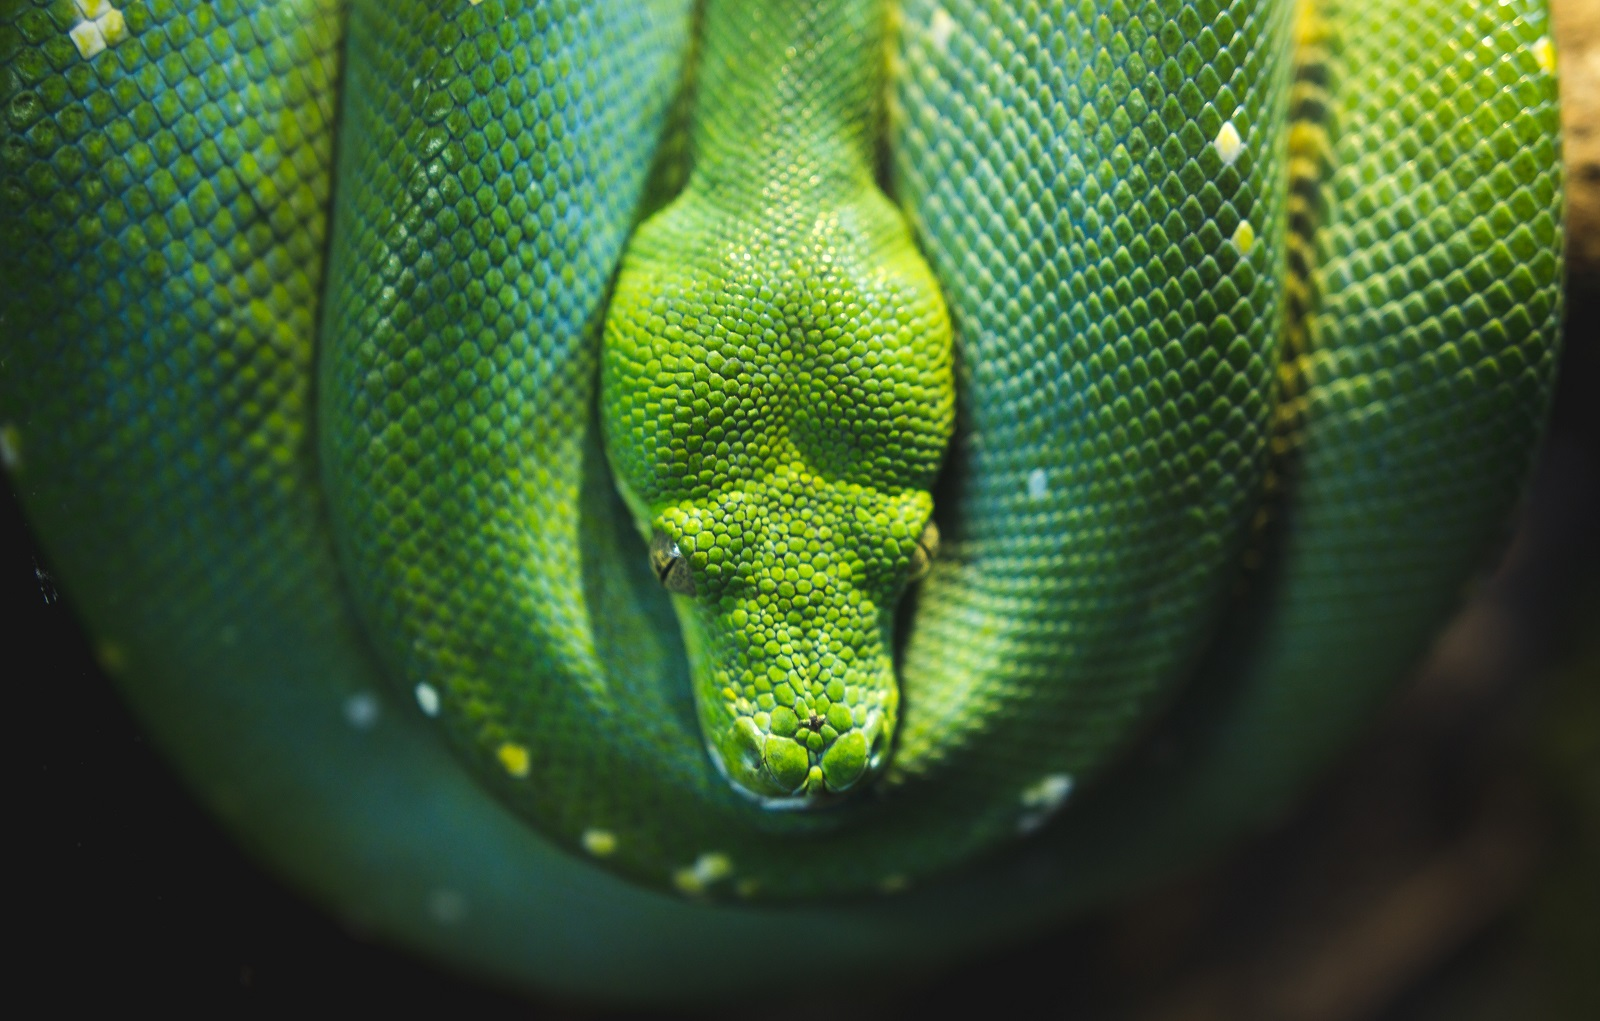 A photo of a green snake